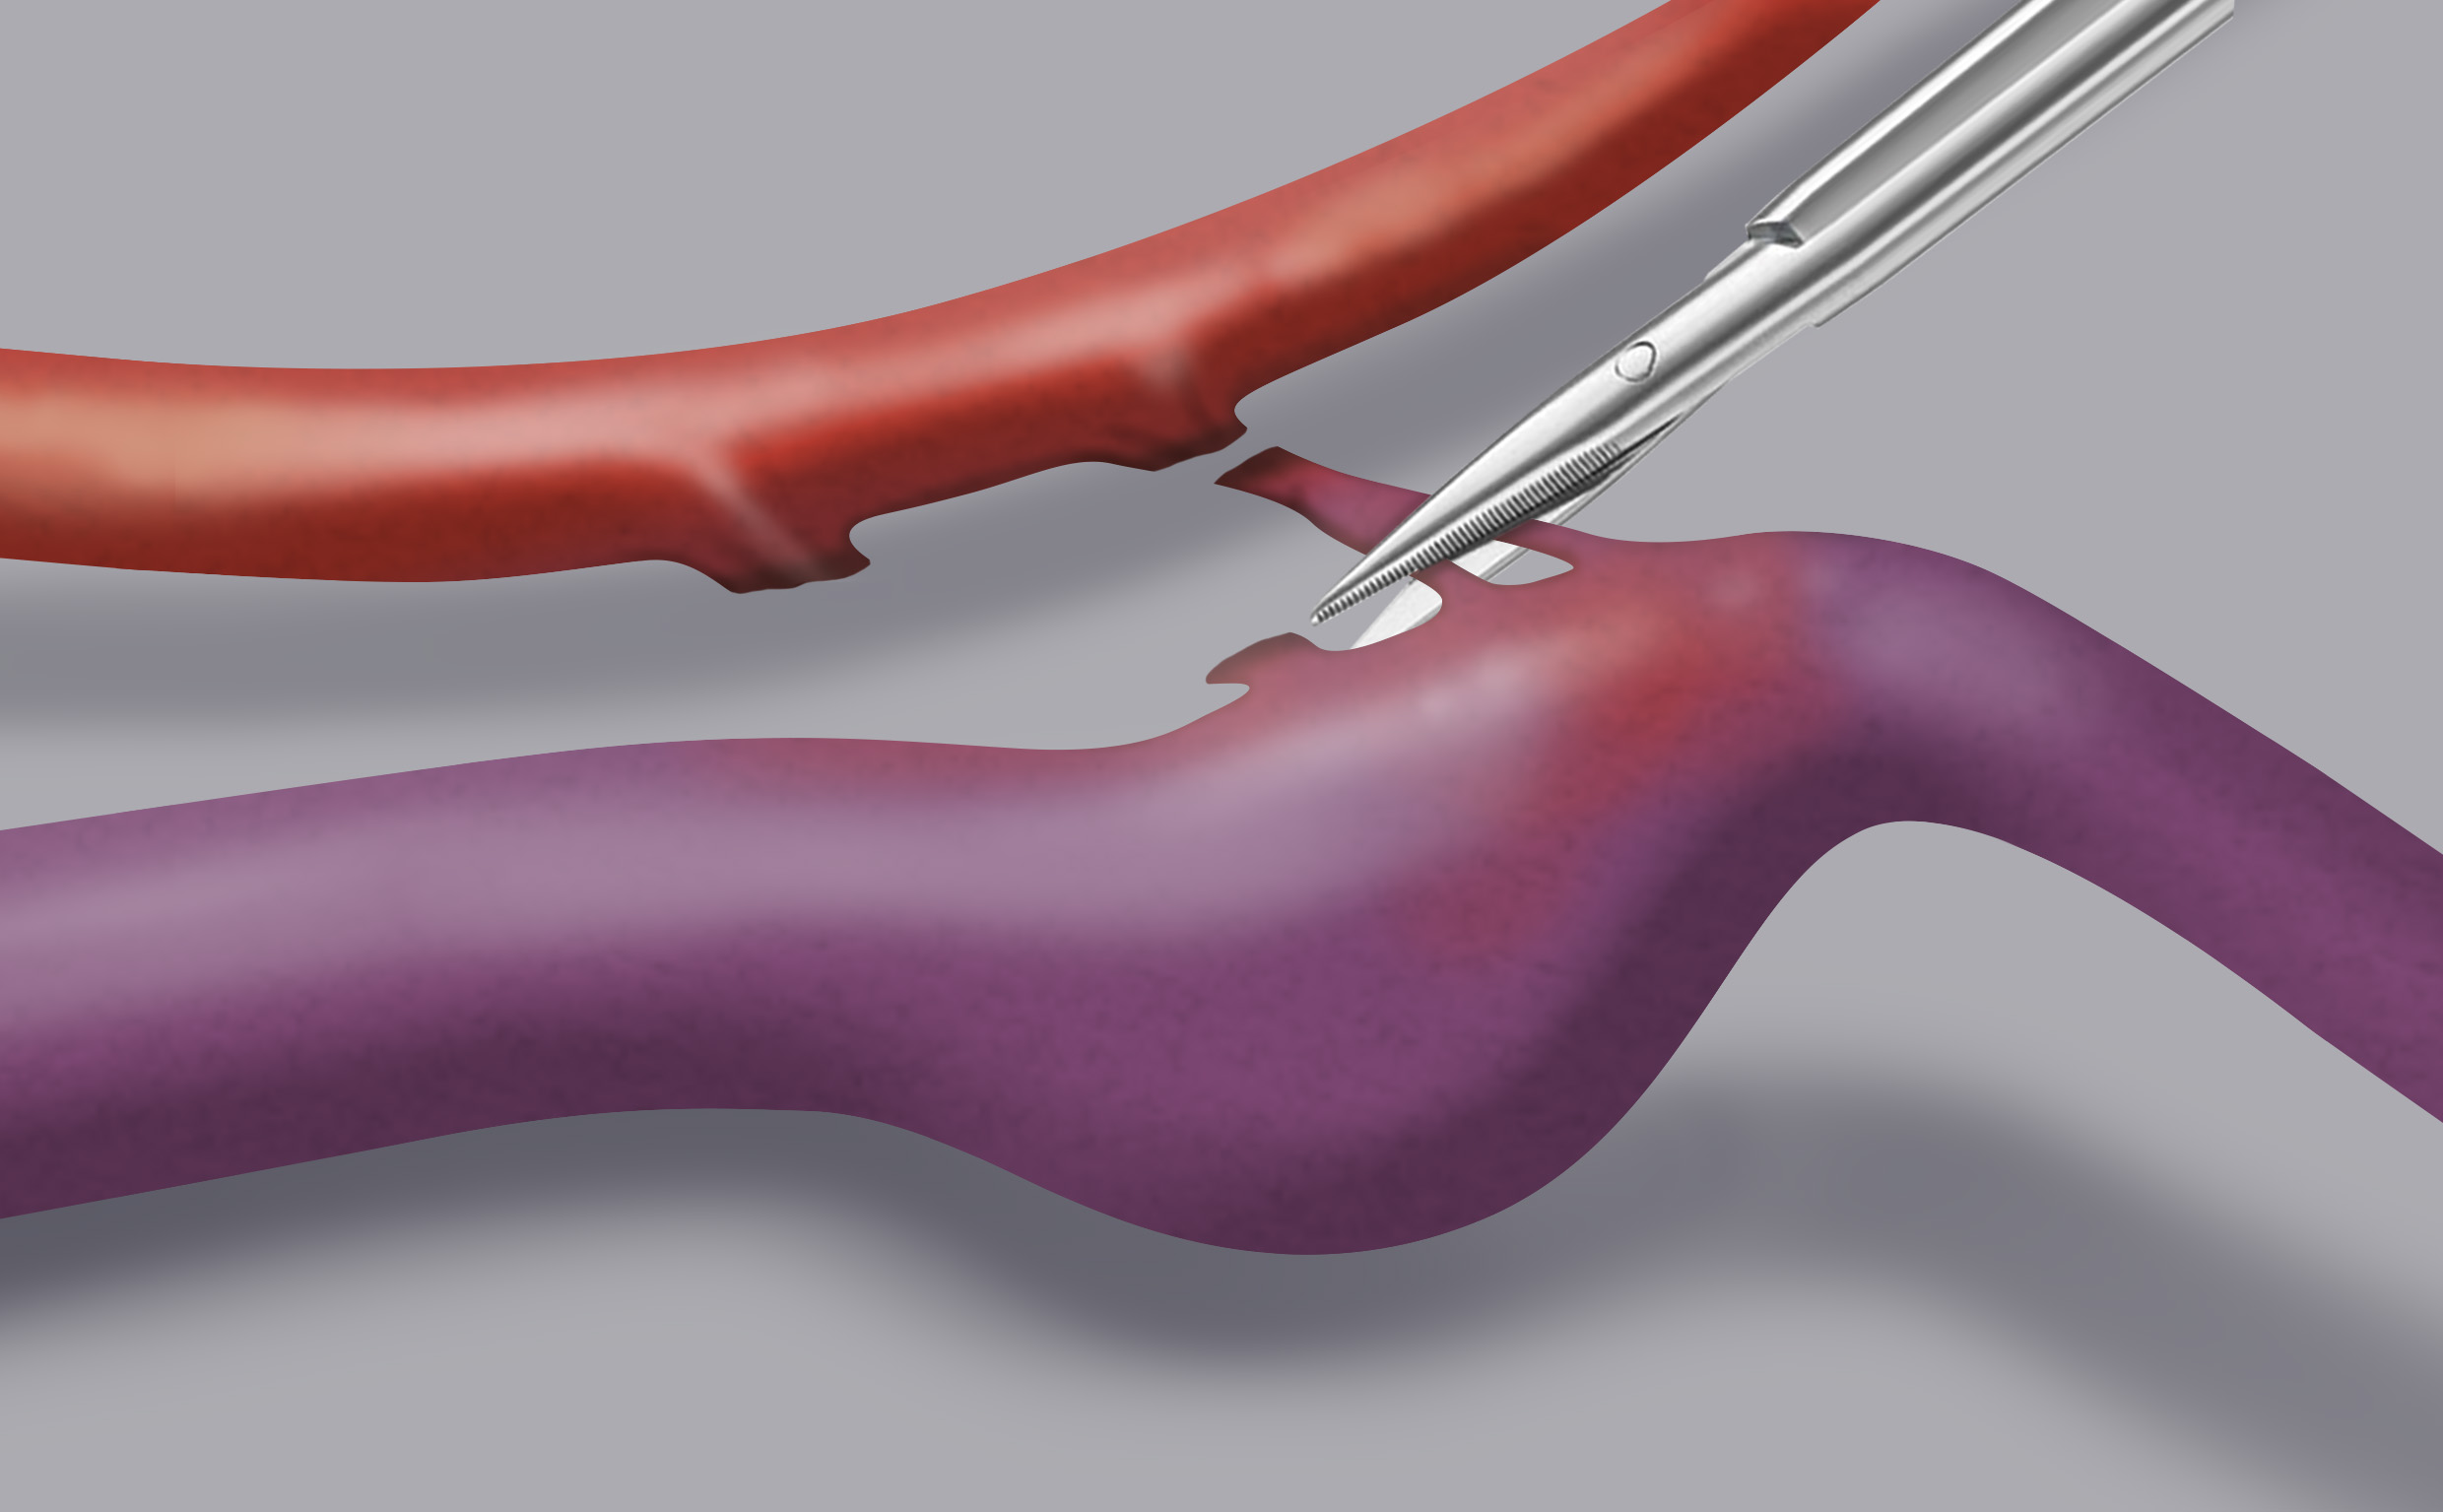 Microsurgical treatment consists in the direct surgical closure of the anomalous arterio-  venous passage, coagulating and cutting the passage.